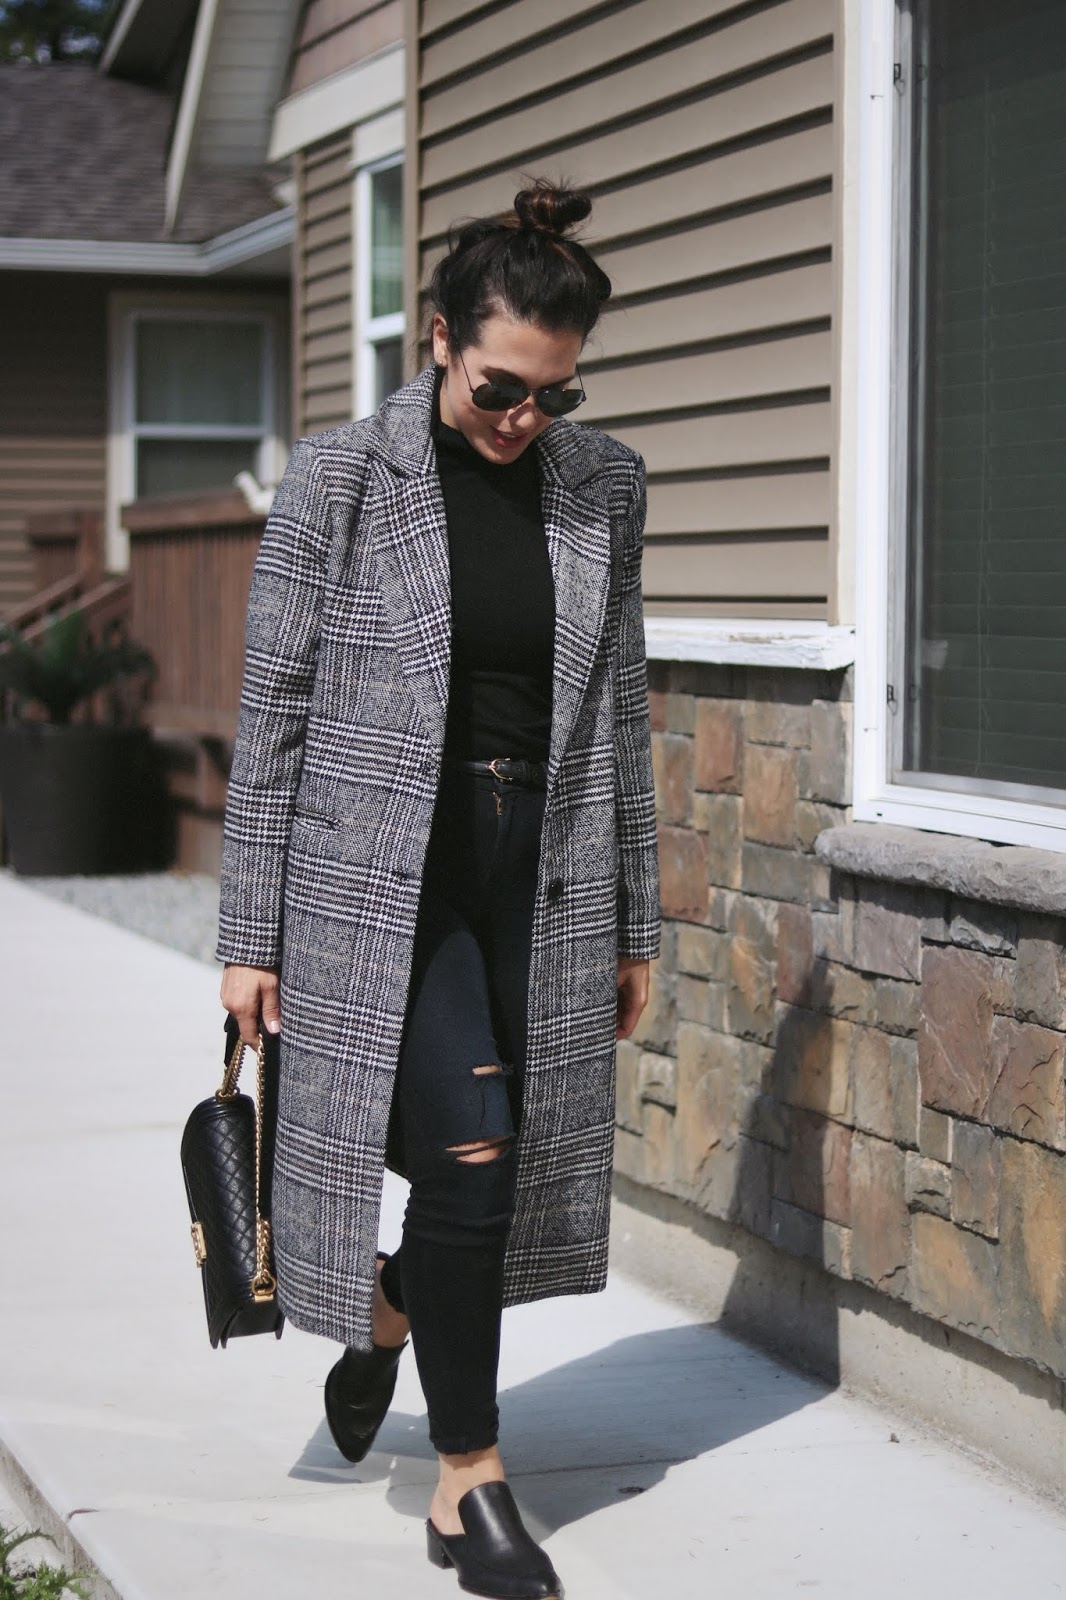 Plaid coat le chateau vancouver fashion blogger cool winter outfit chanel boy aleesha harris